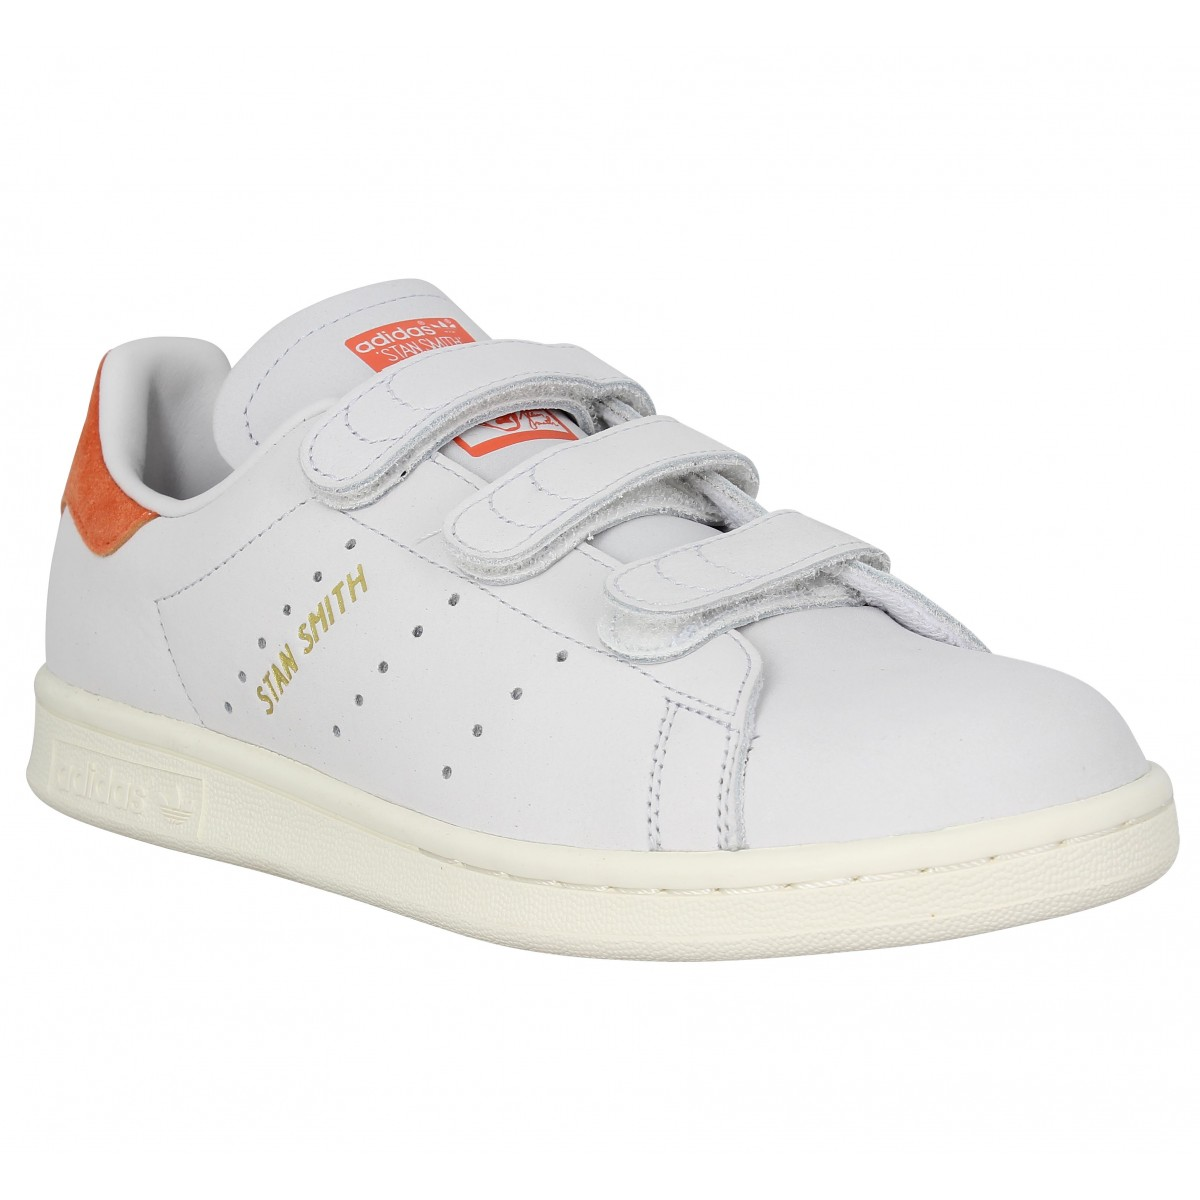 adidas stan smith velcro nubuck femme blanc femme fanny. Black Bedroom Furniture Sets. Home Design Ideas